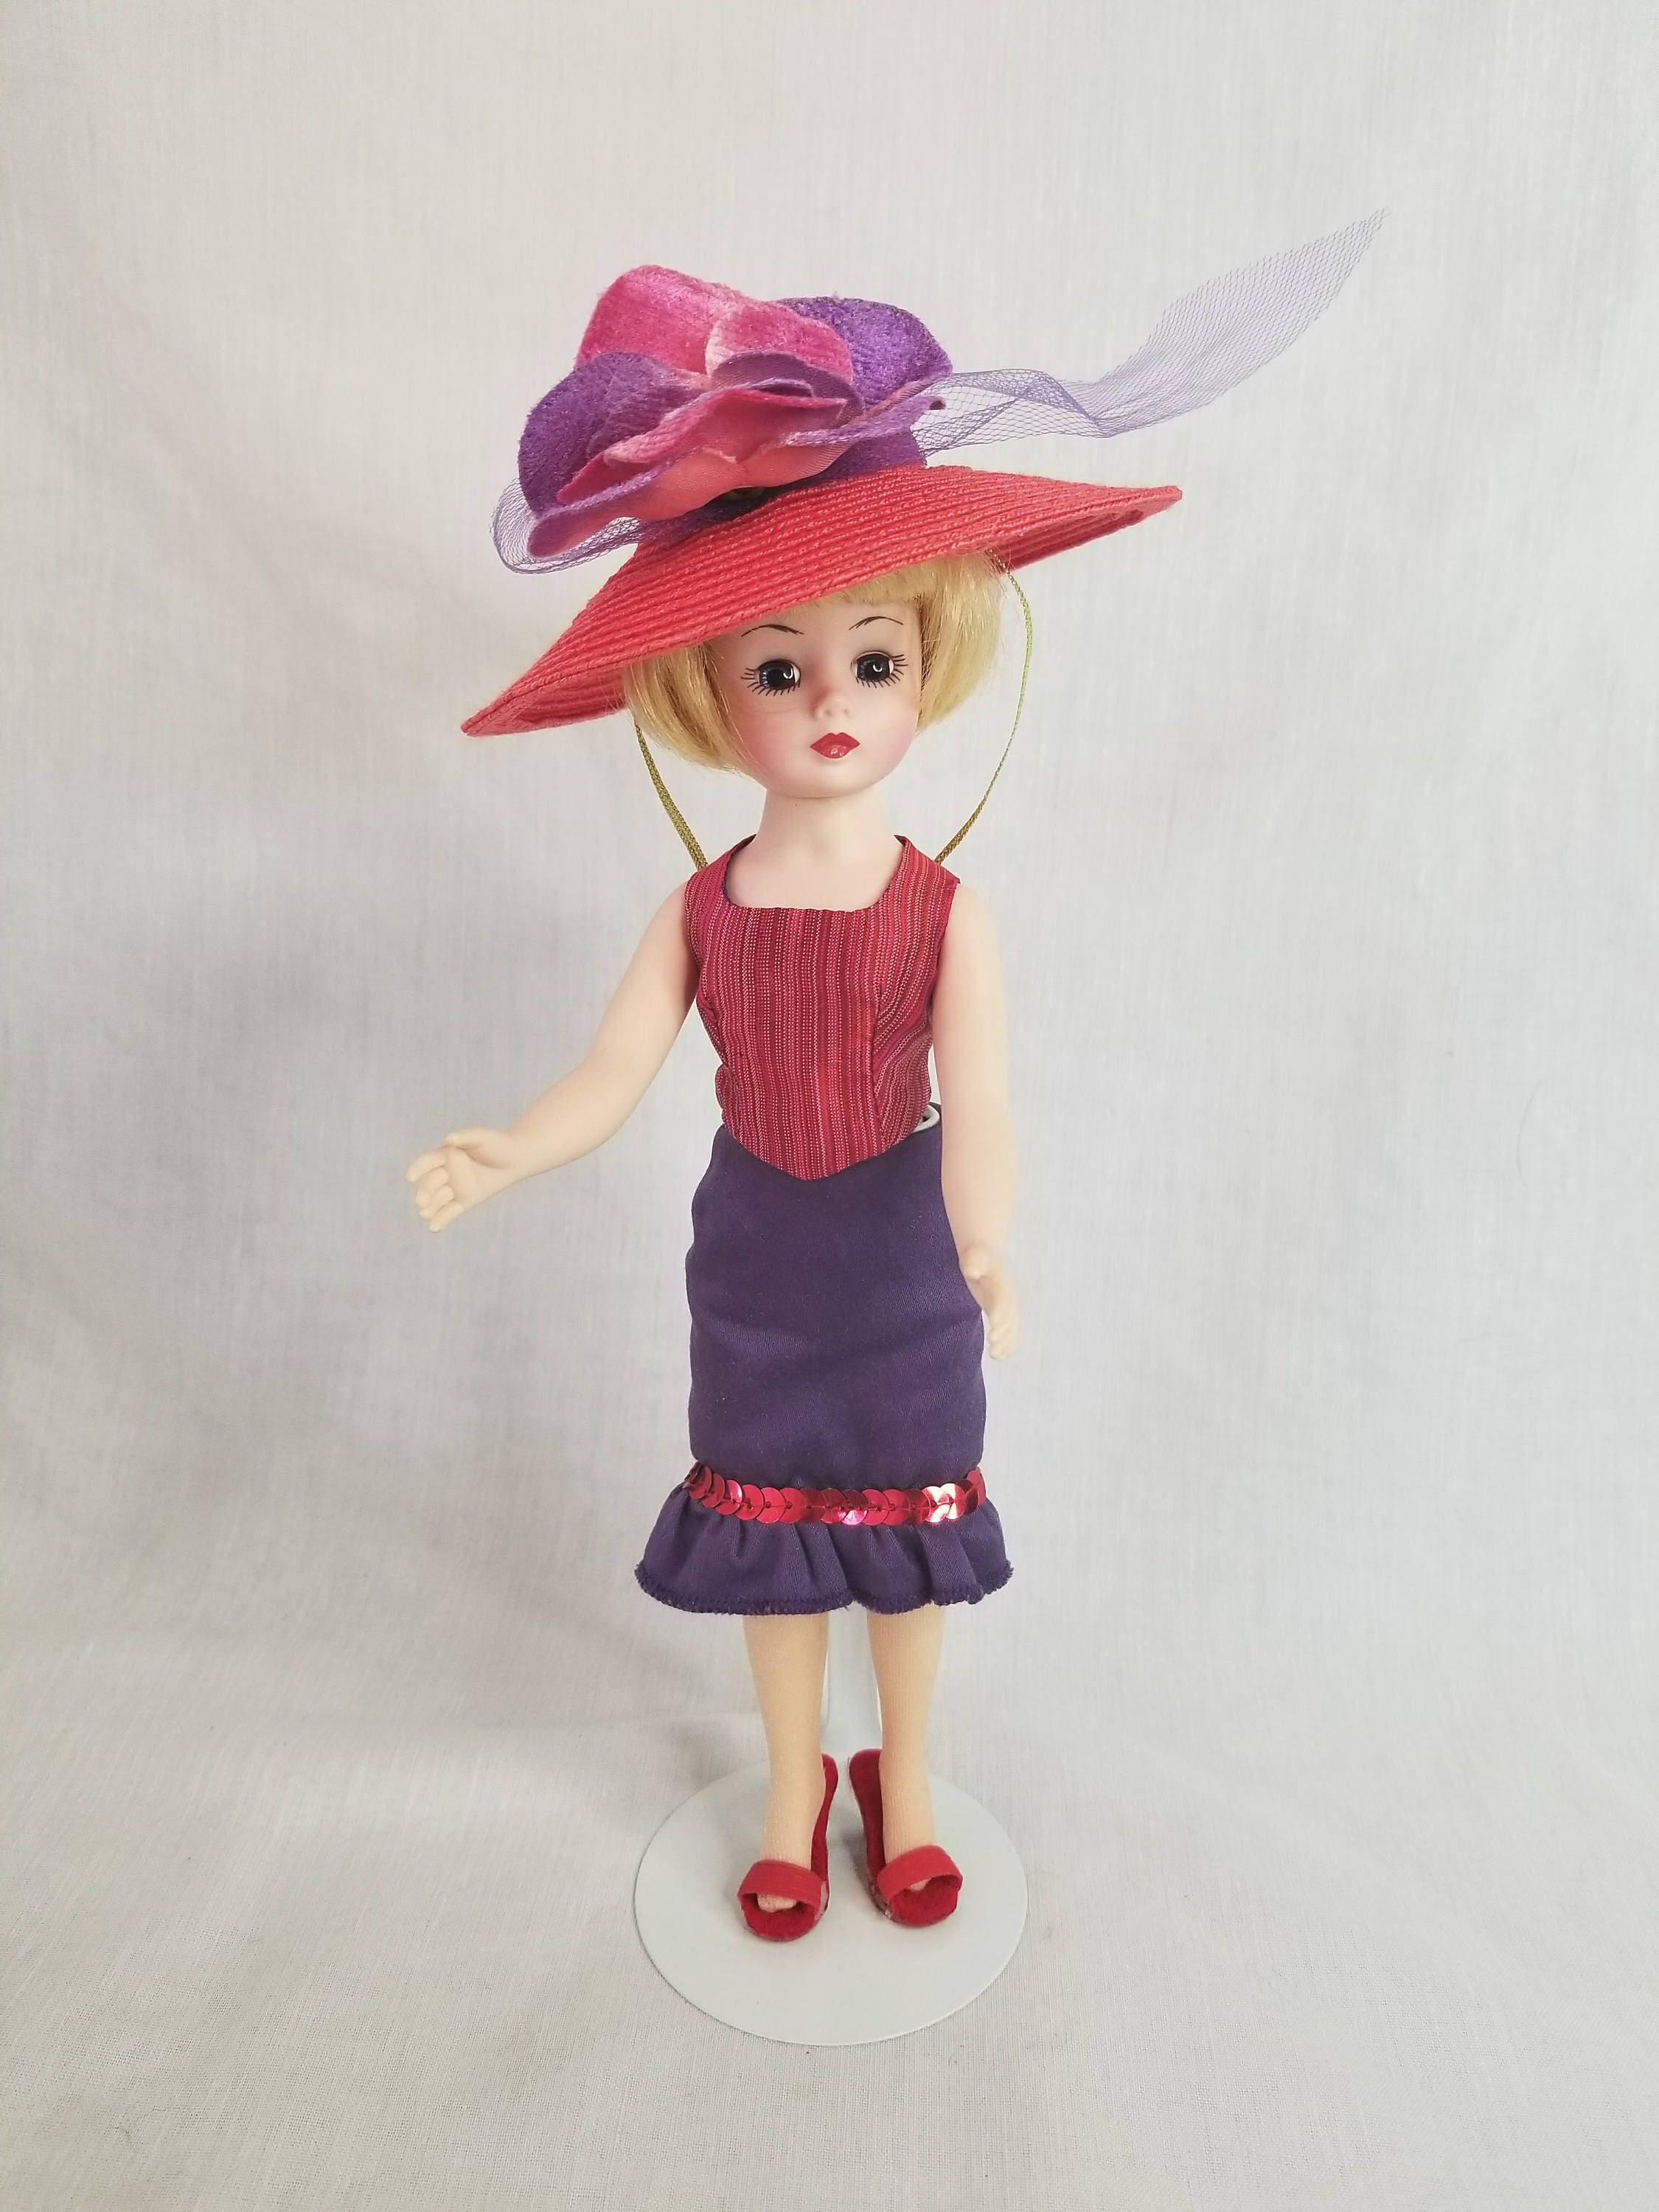 Amazing madame alexander coquette cissy cissette doll no box 10 inch tagged hat with - Madame coquette ...